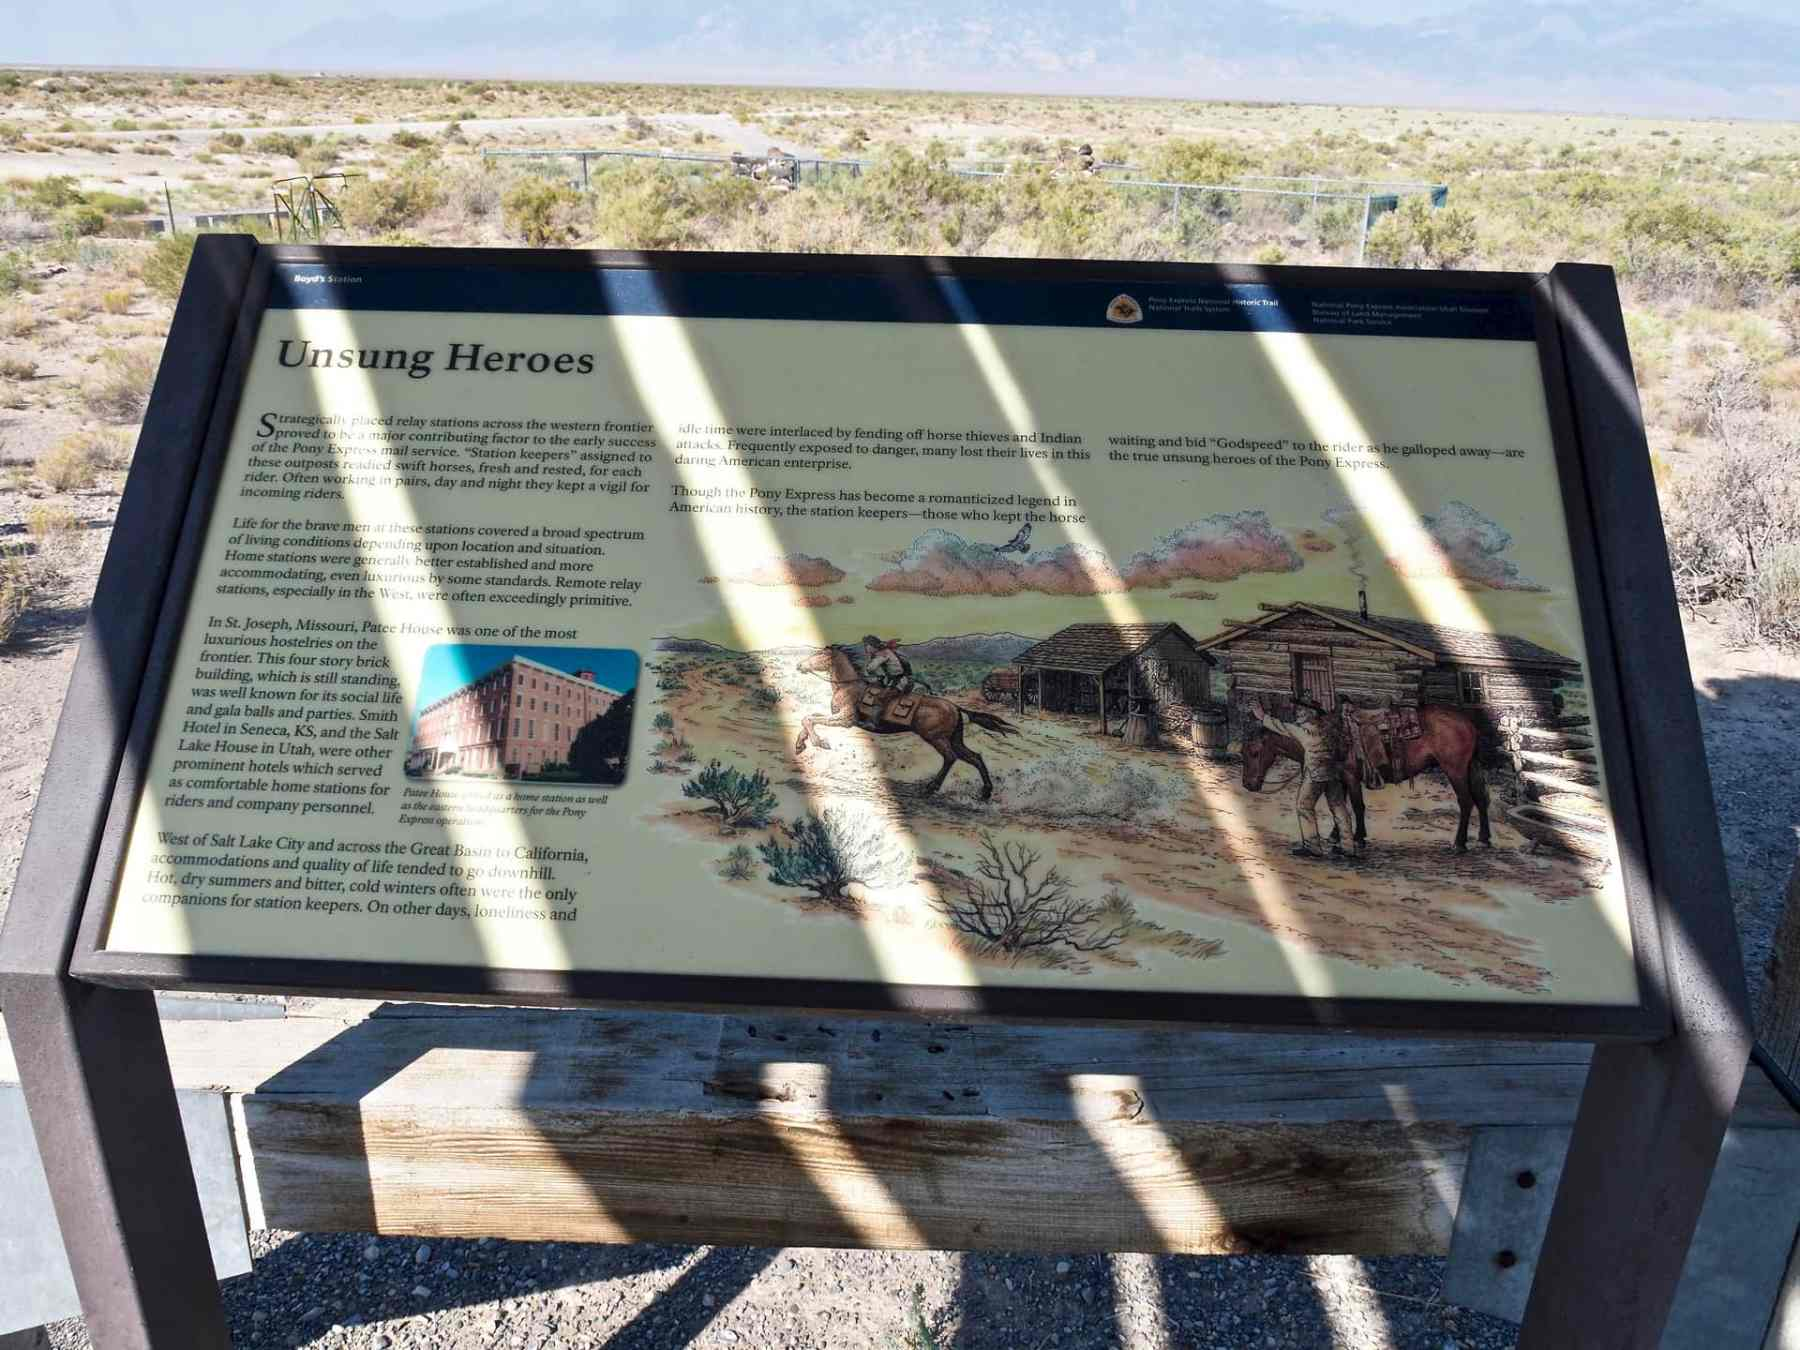 info about the Pony Express